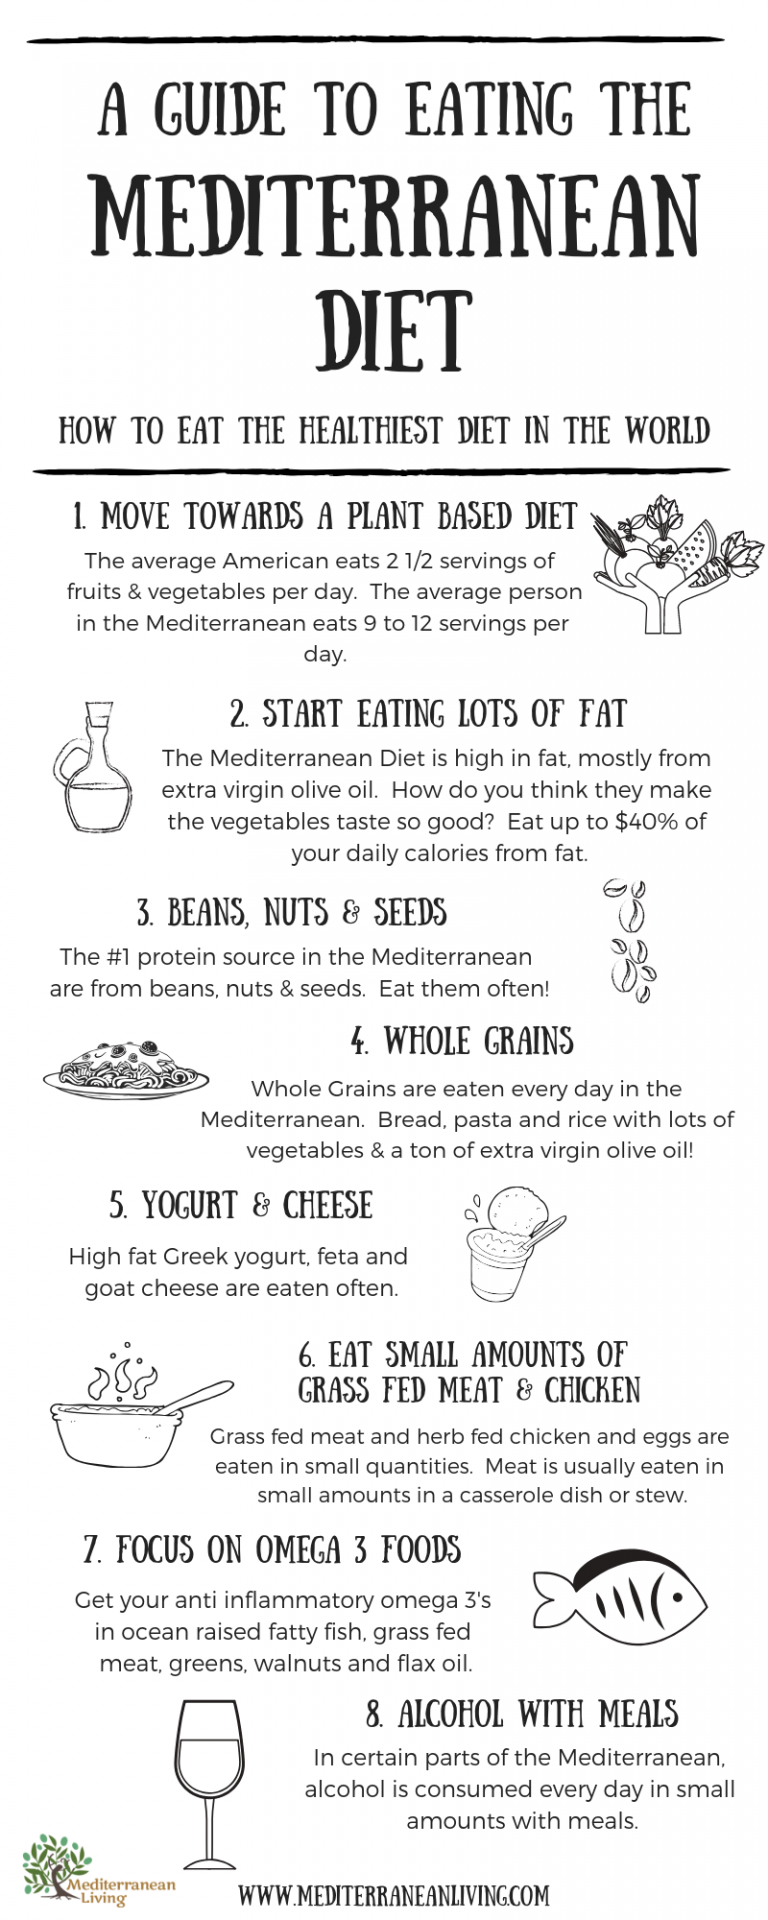 The Ultimate Guide to Eating the Mediterranean Diet - Mediterranean Living